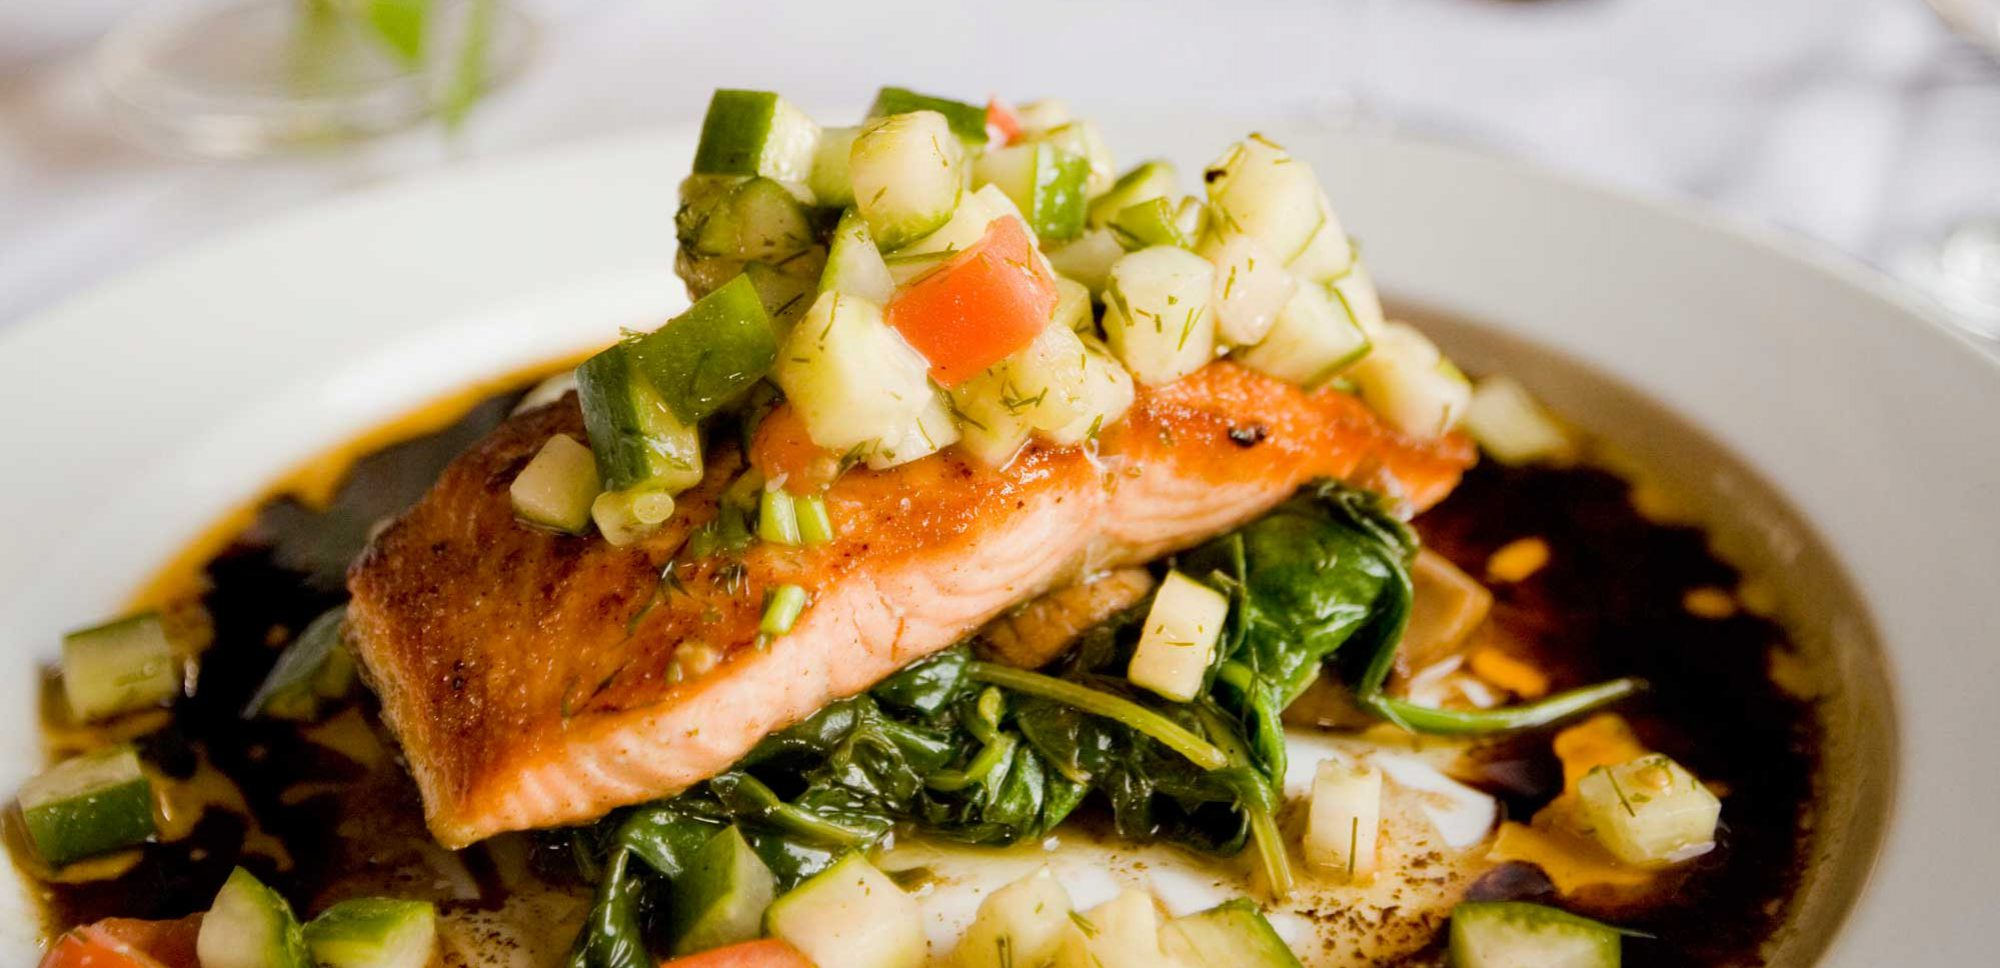 Salmon fillet dinner, Inlets Restaurant